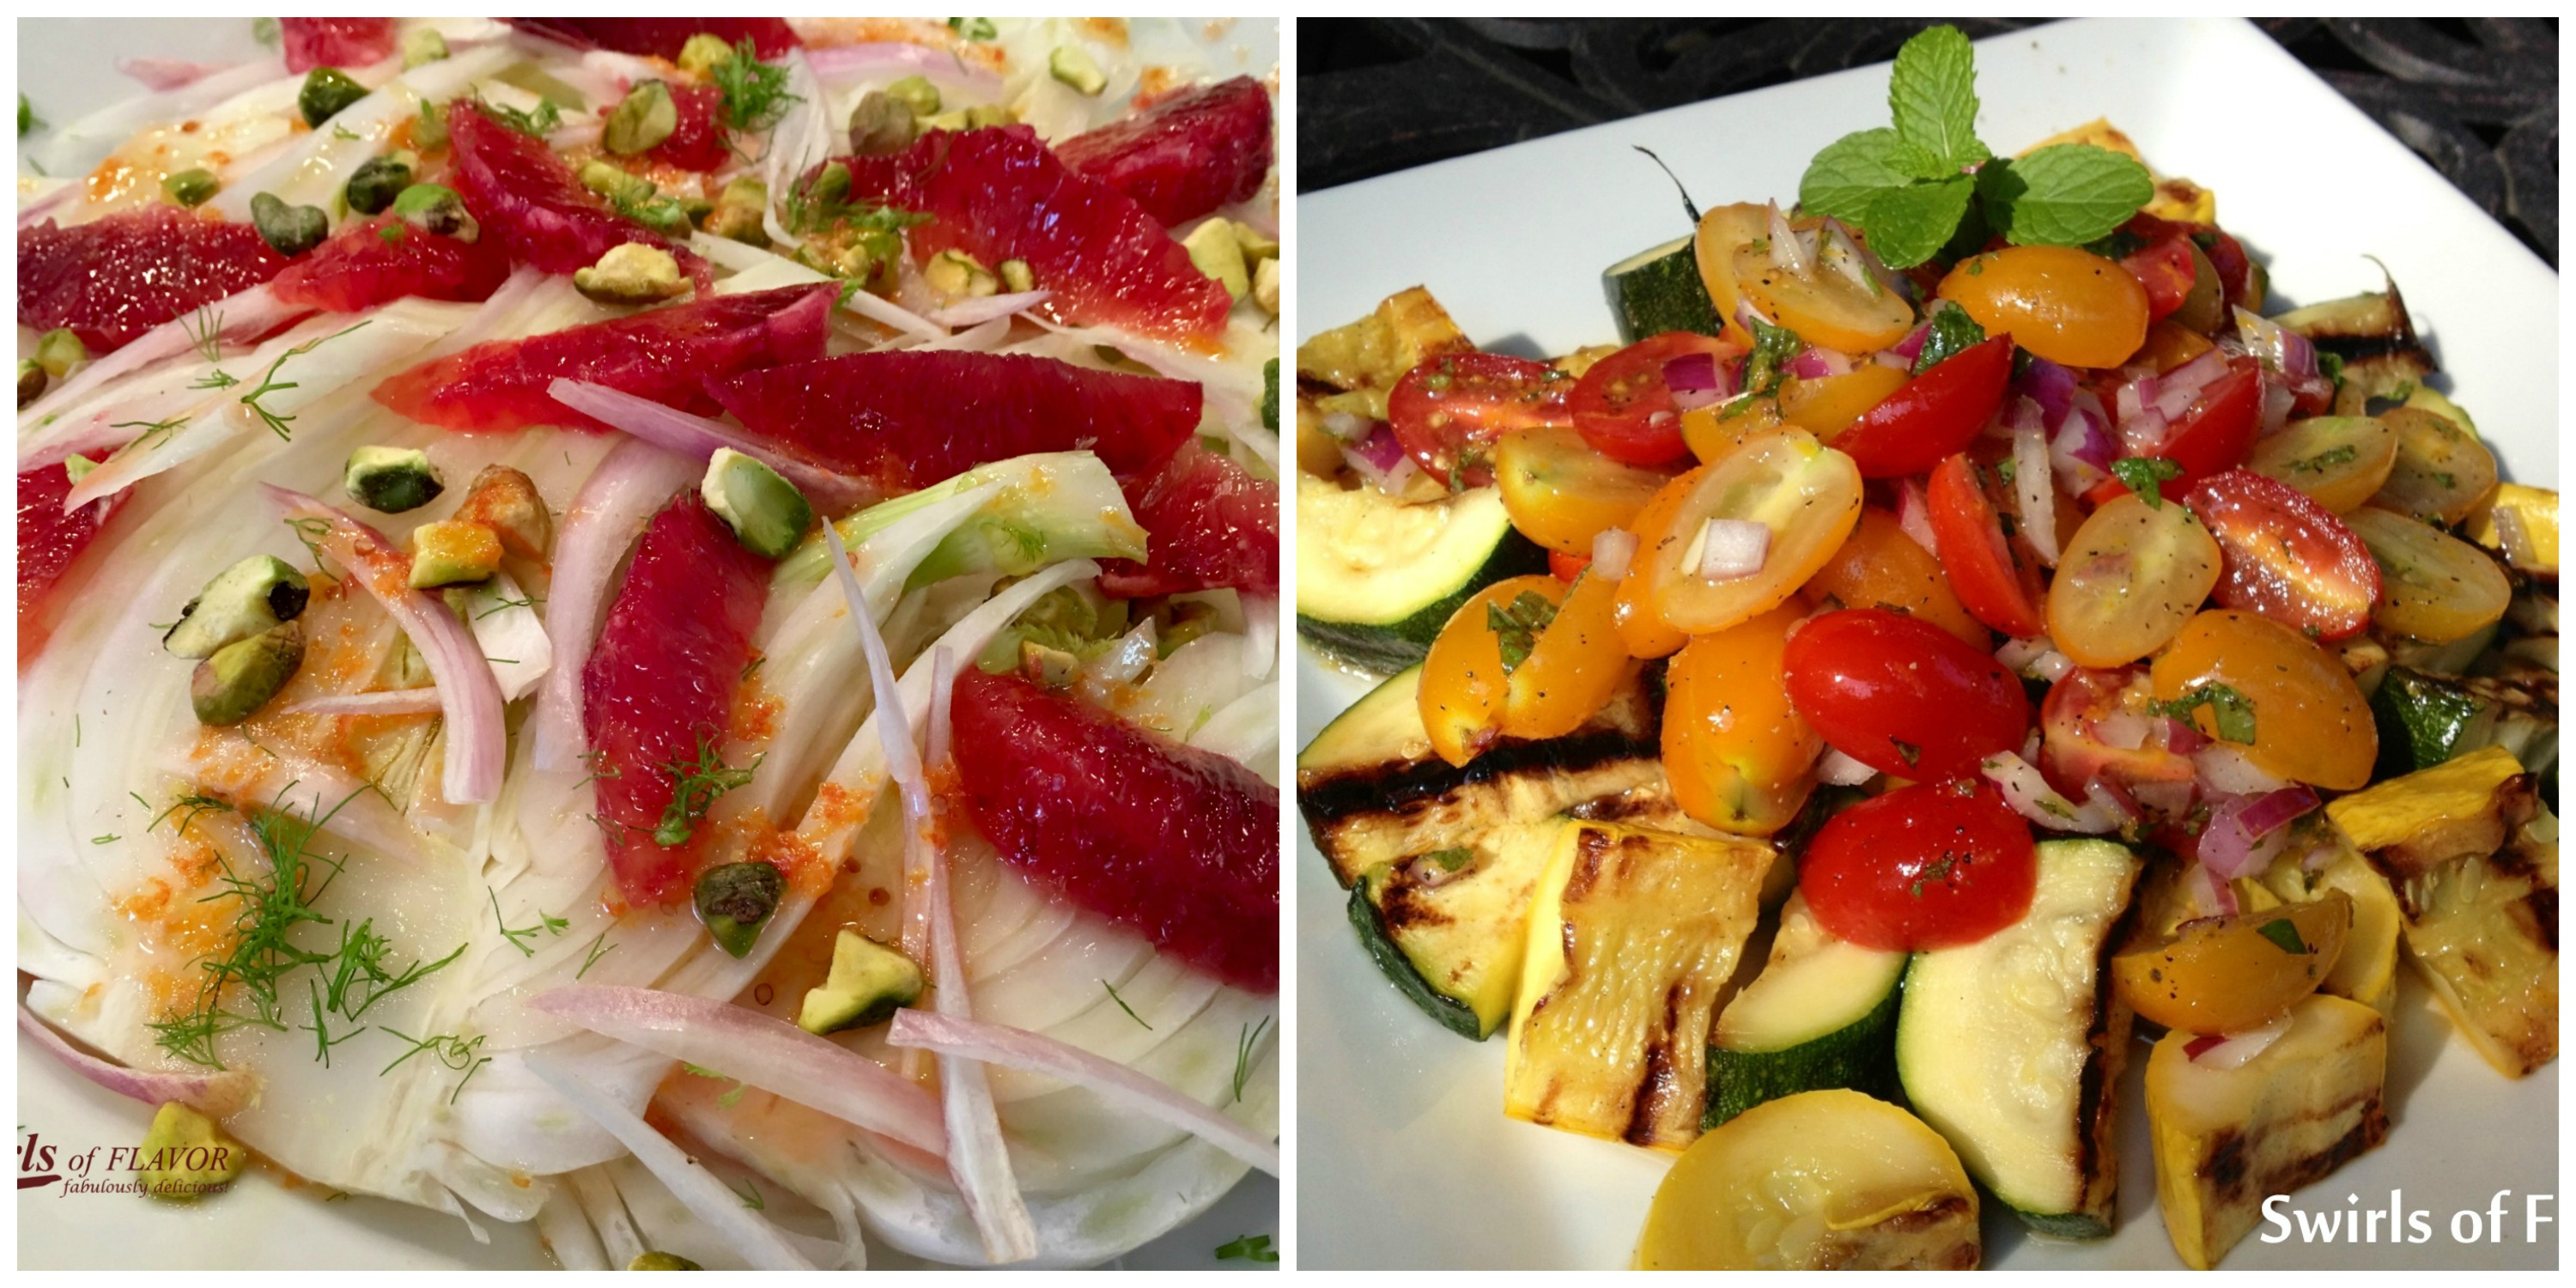 Blood Orange Fennel Salad and Zucchini Tomato Salad